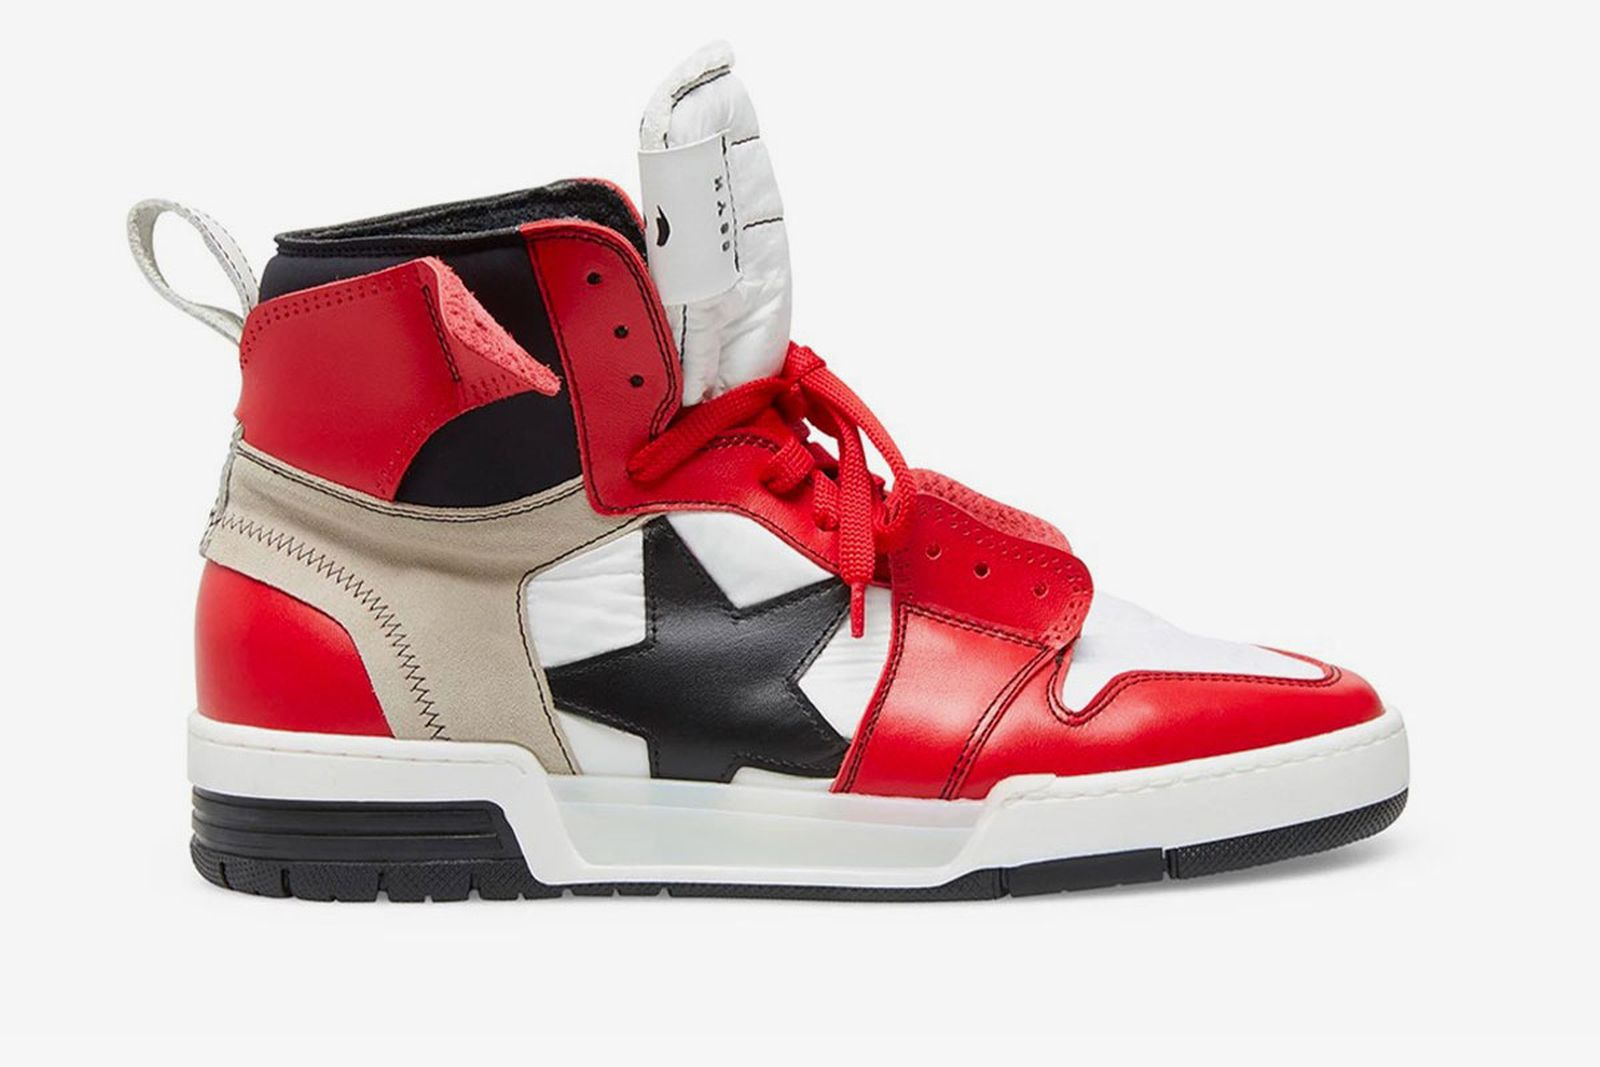 Steve Madden high-top sneaker red white black star